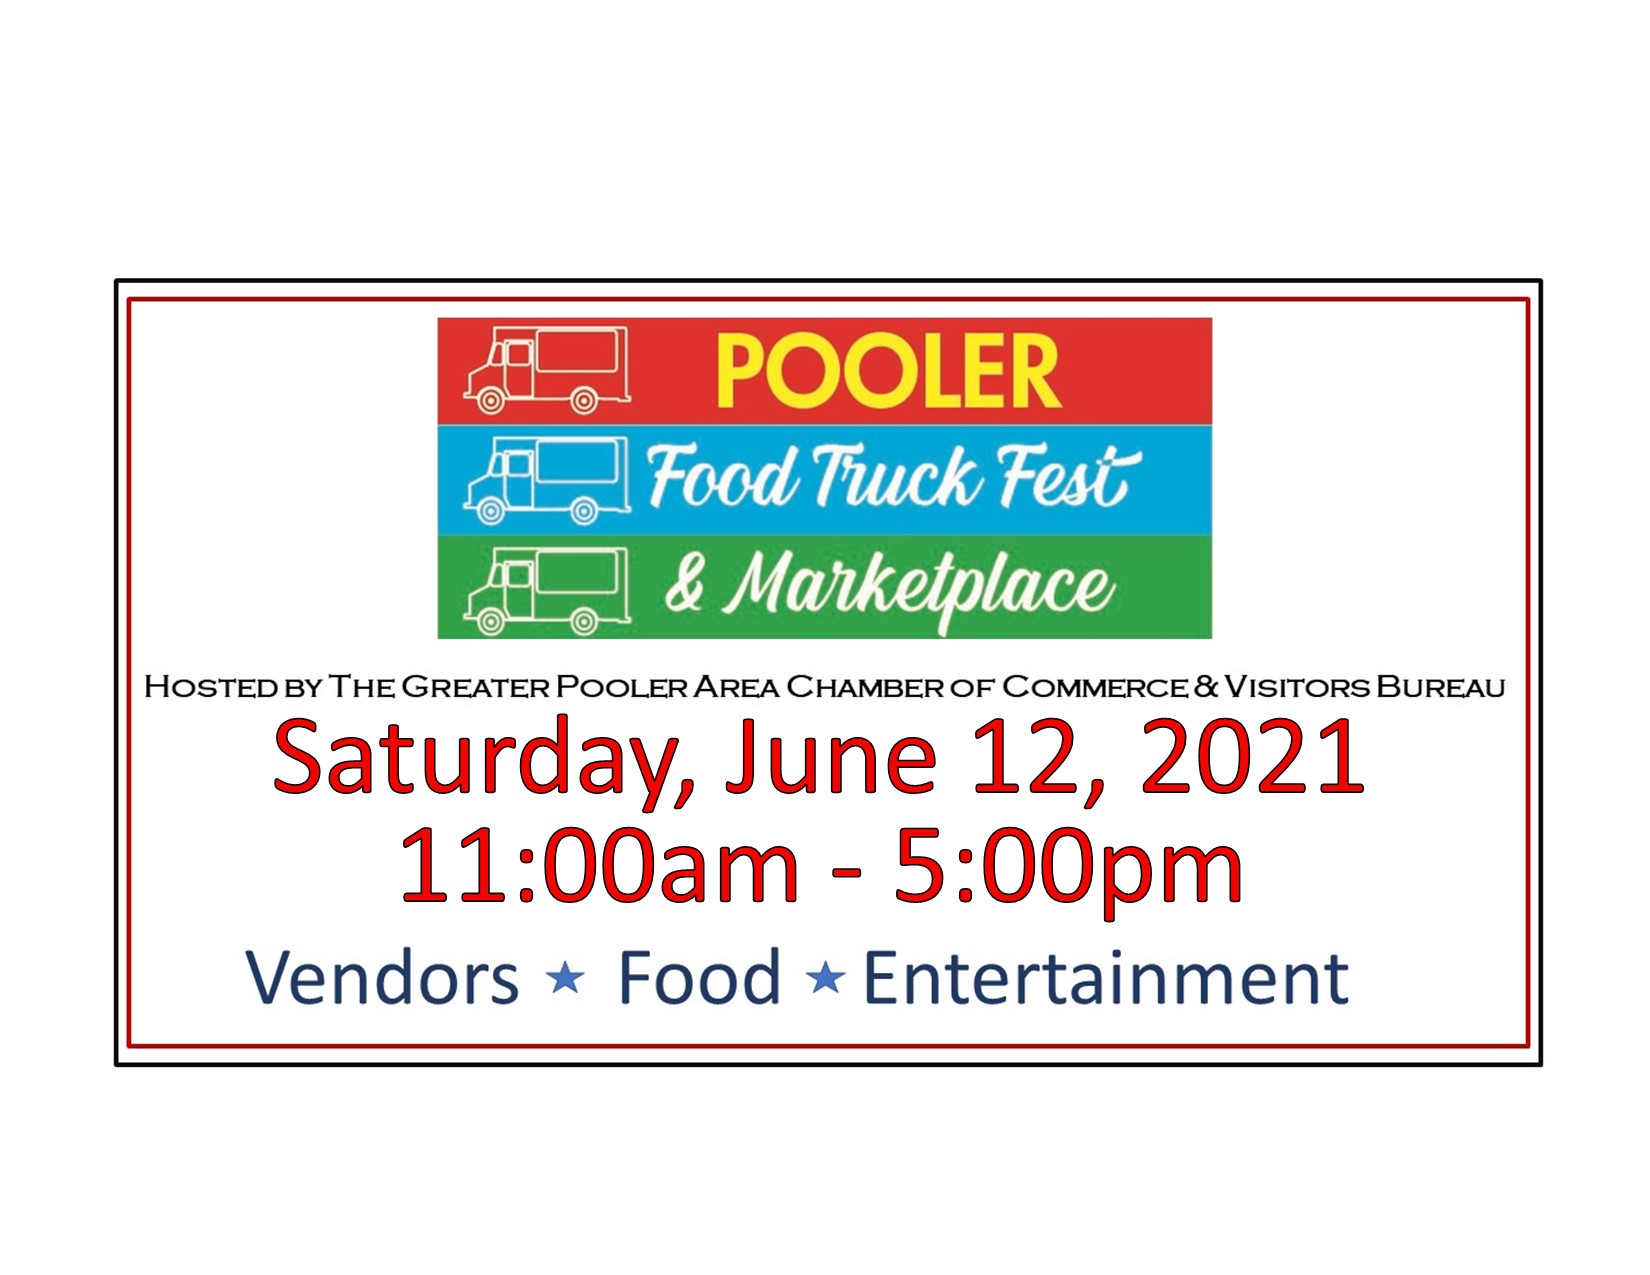 food truck event poster for facebook